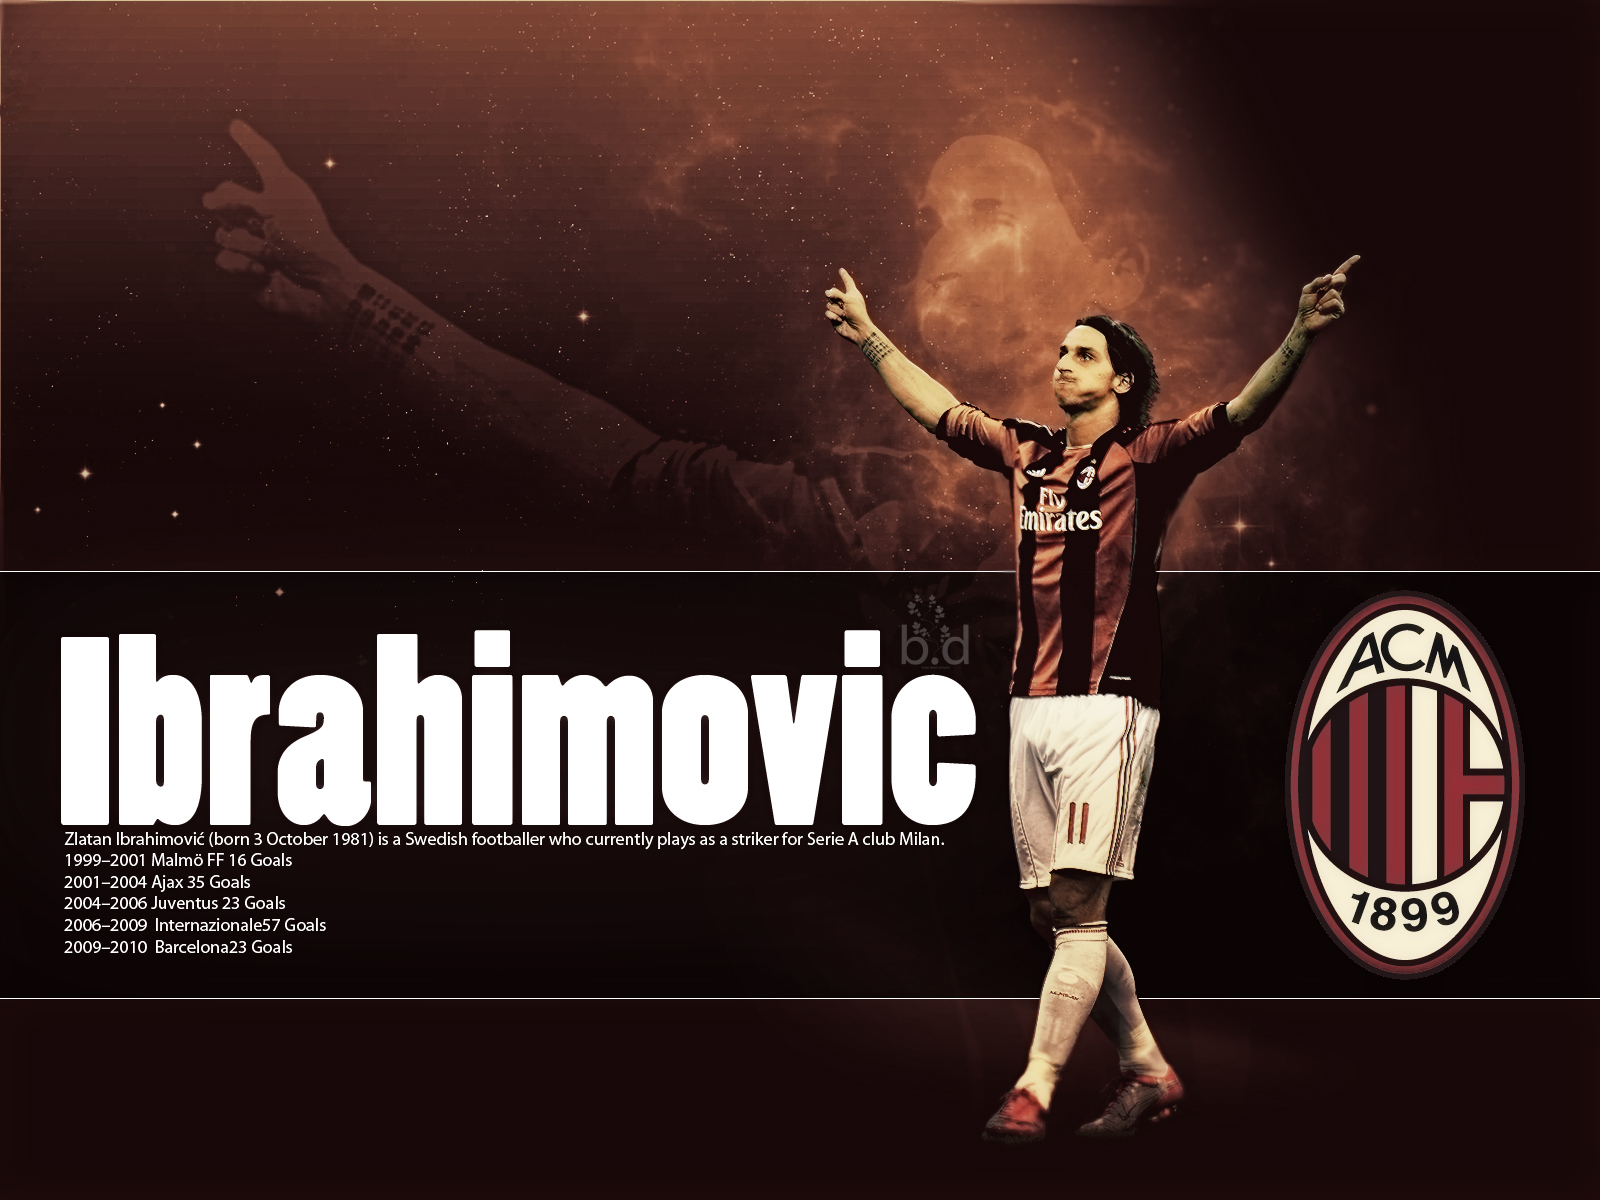 zlatan ibrahimovic new 2012 wallpapers it 39 s all about